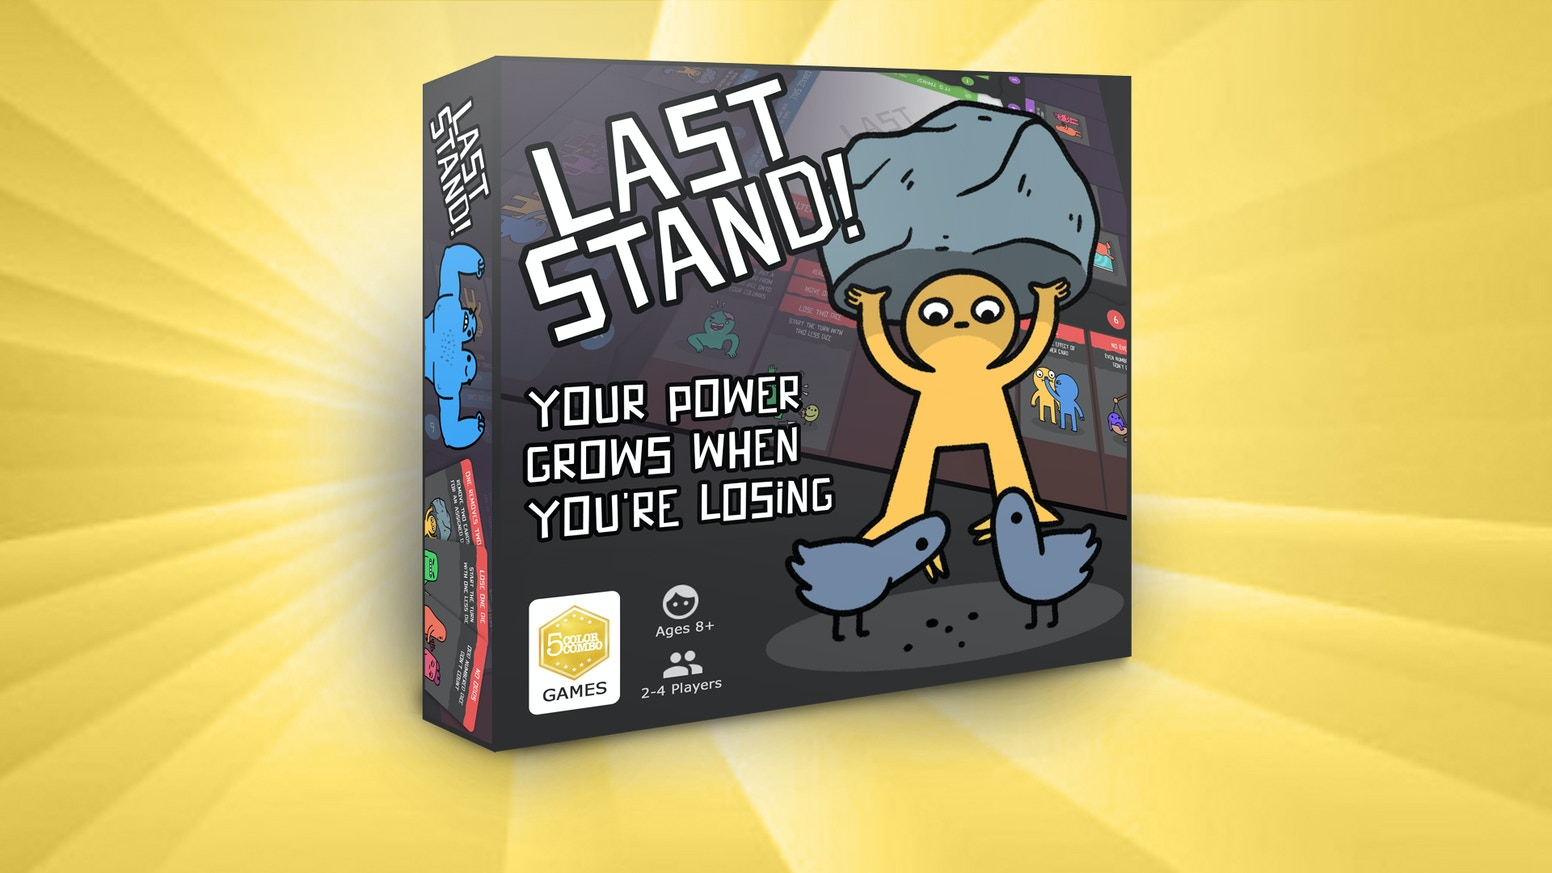 The game where your power grows when you're losing!